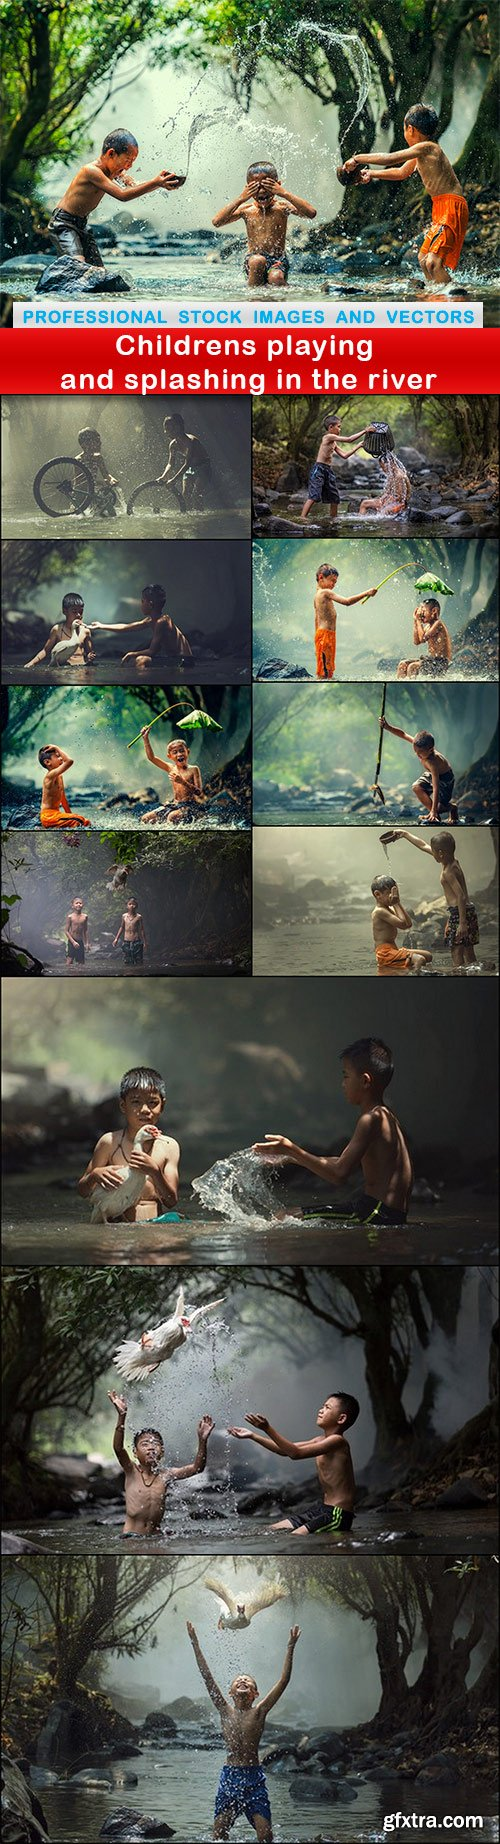 Childrens playing and splashing in the river - 12 UHQ JPEG